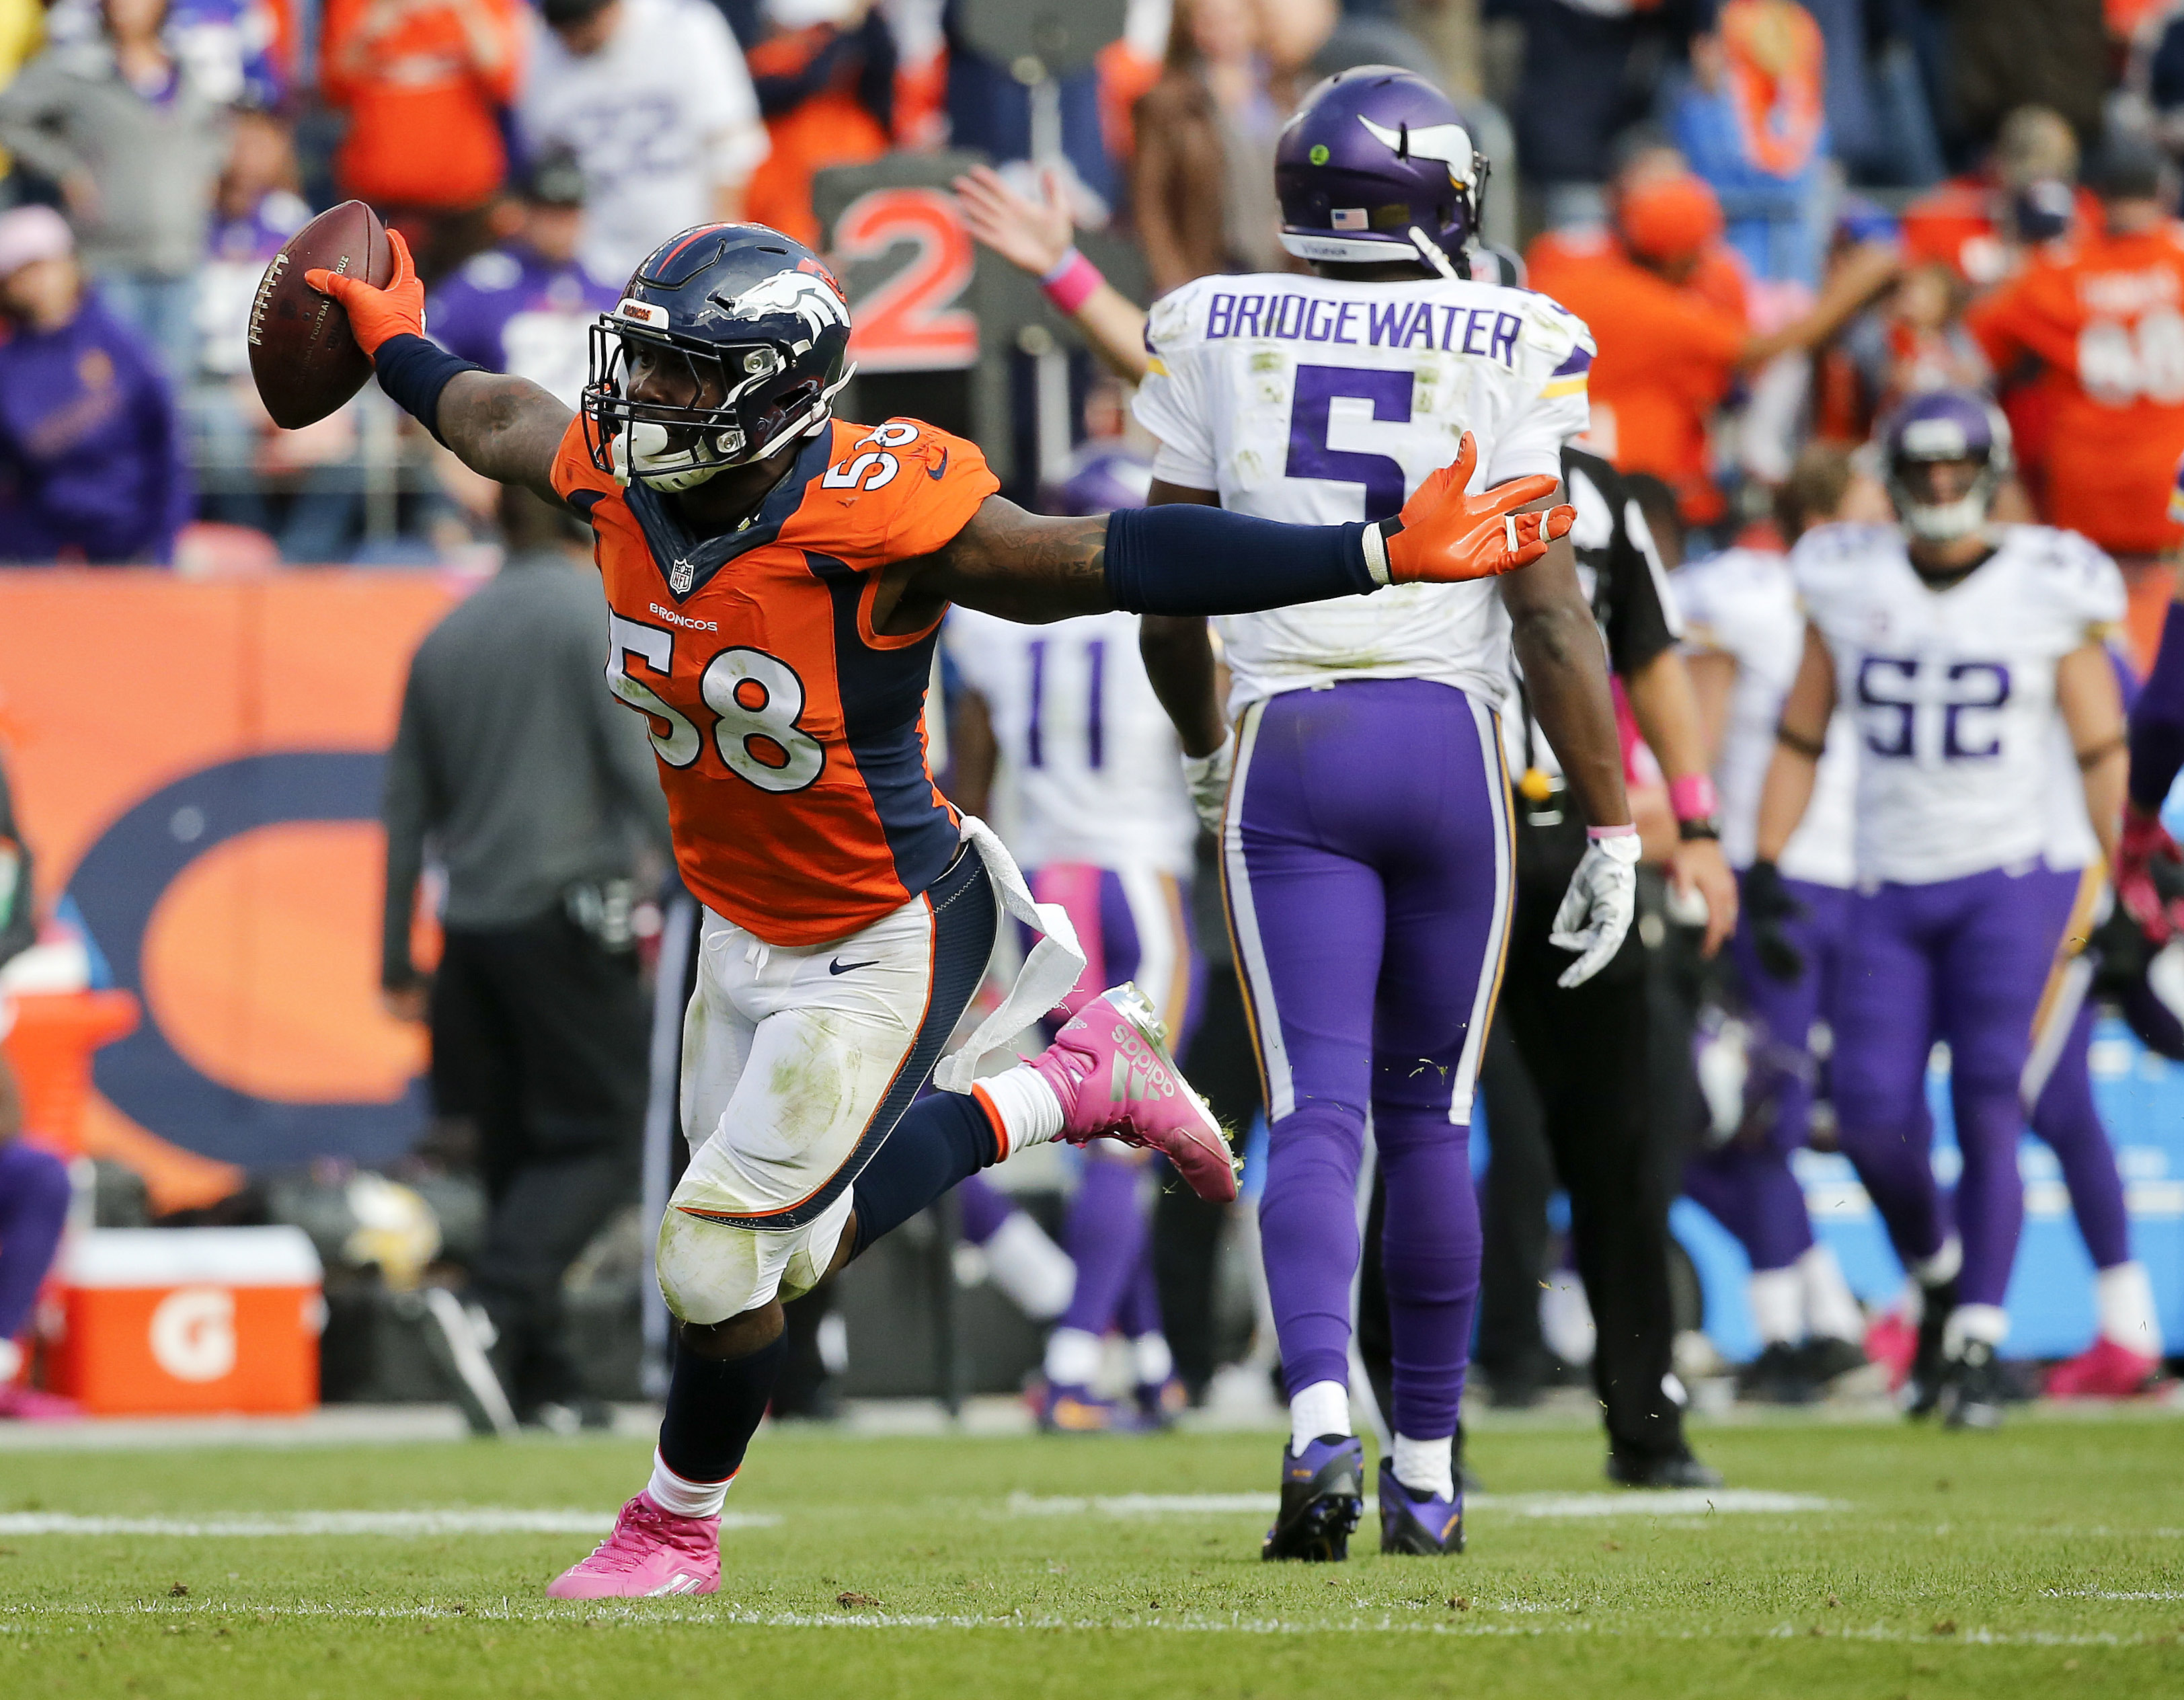 FILE - In this Oct. 4, 2015, file photo, Denver Broncos outside linebacker Von Miller (58) celebrates after sacking Minnesota Vikings quarterback Teddy Bridgewater (5) during the second half of an NFL football game, in Denver. Von Miller is back to lead D